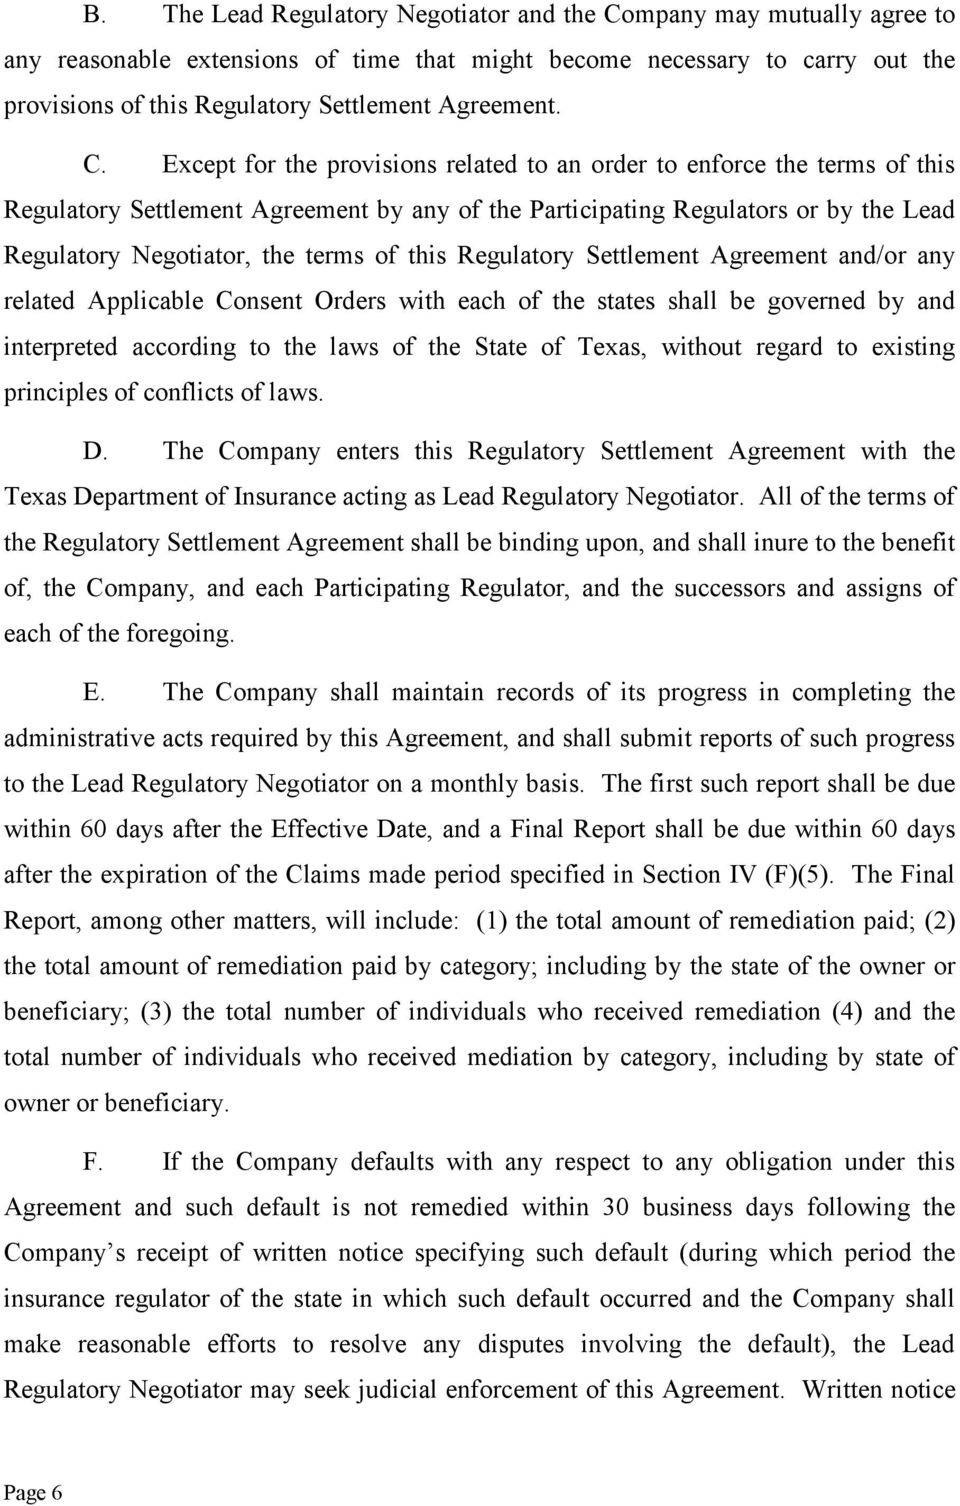 Except for the provisions related to an order to enforce the terms of this Regulatory Settlement Agreement by any of the Participating Regulators or by the Lead Regulatory Negotiator, the terms of